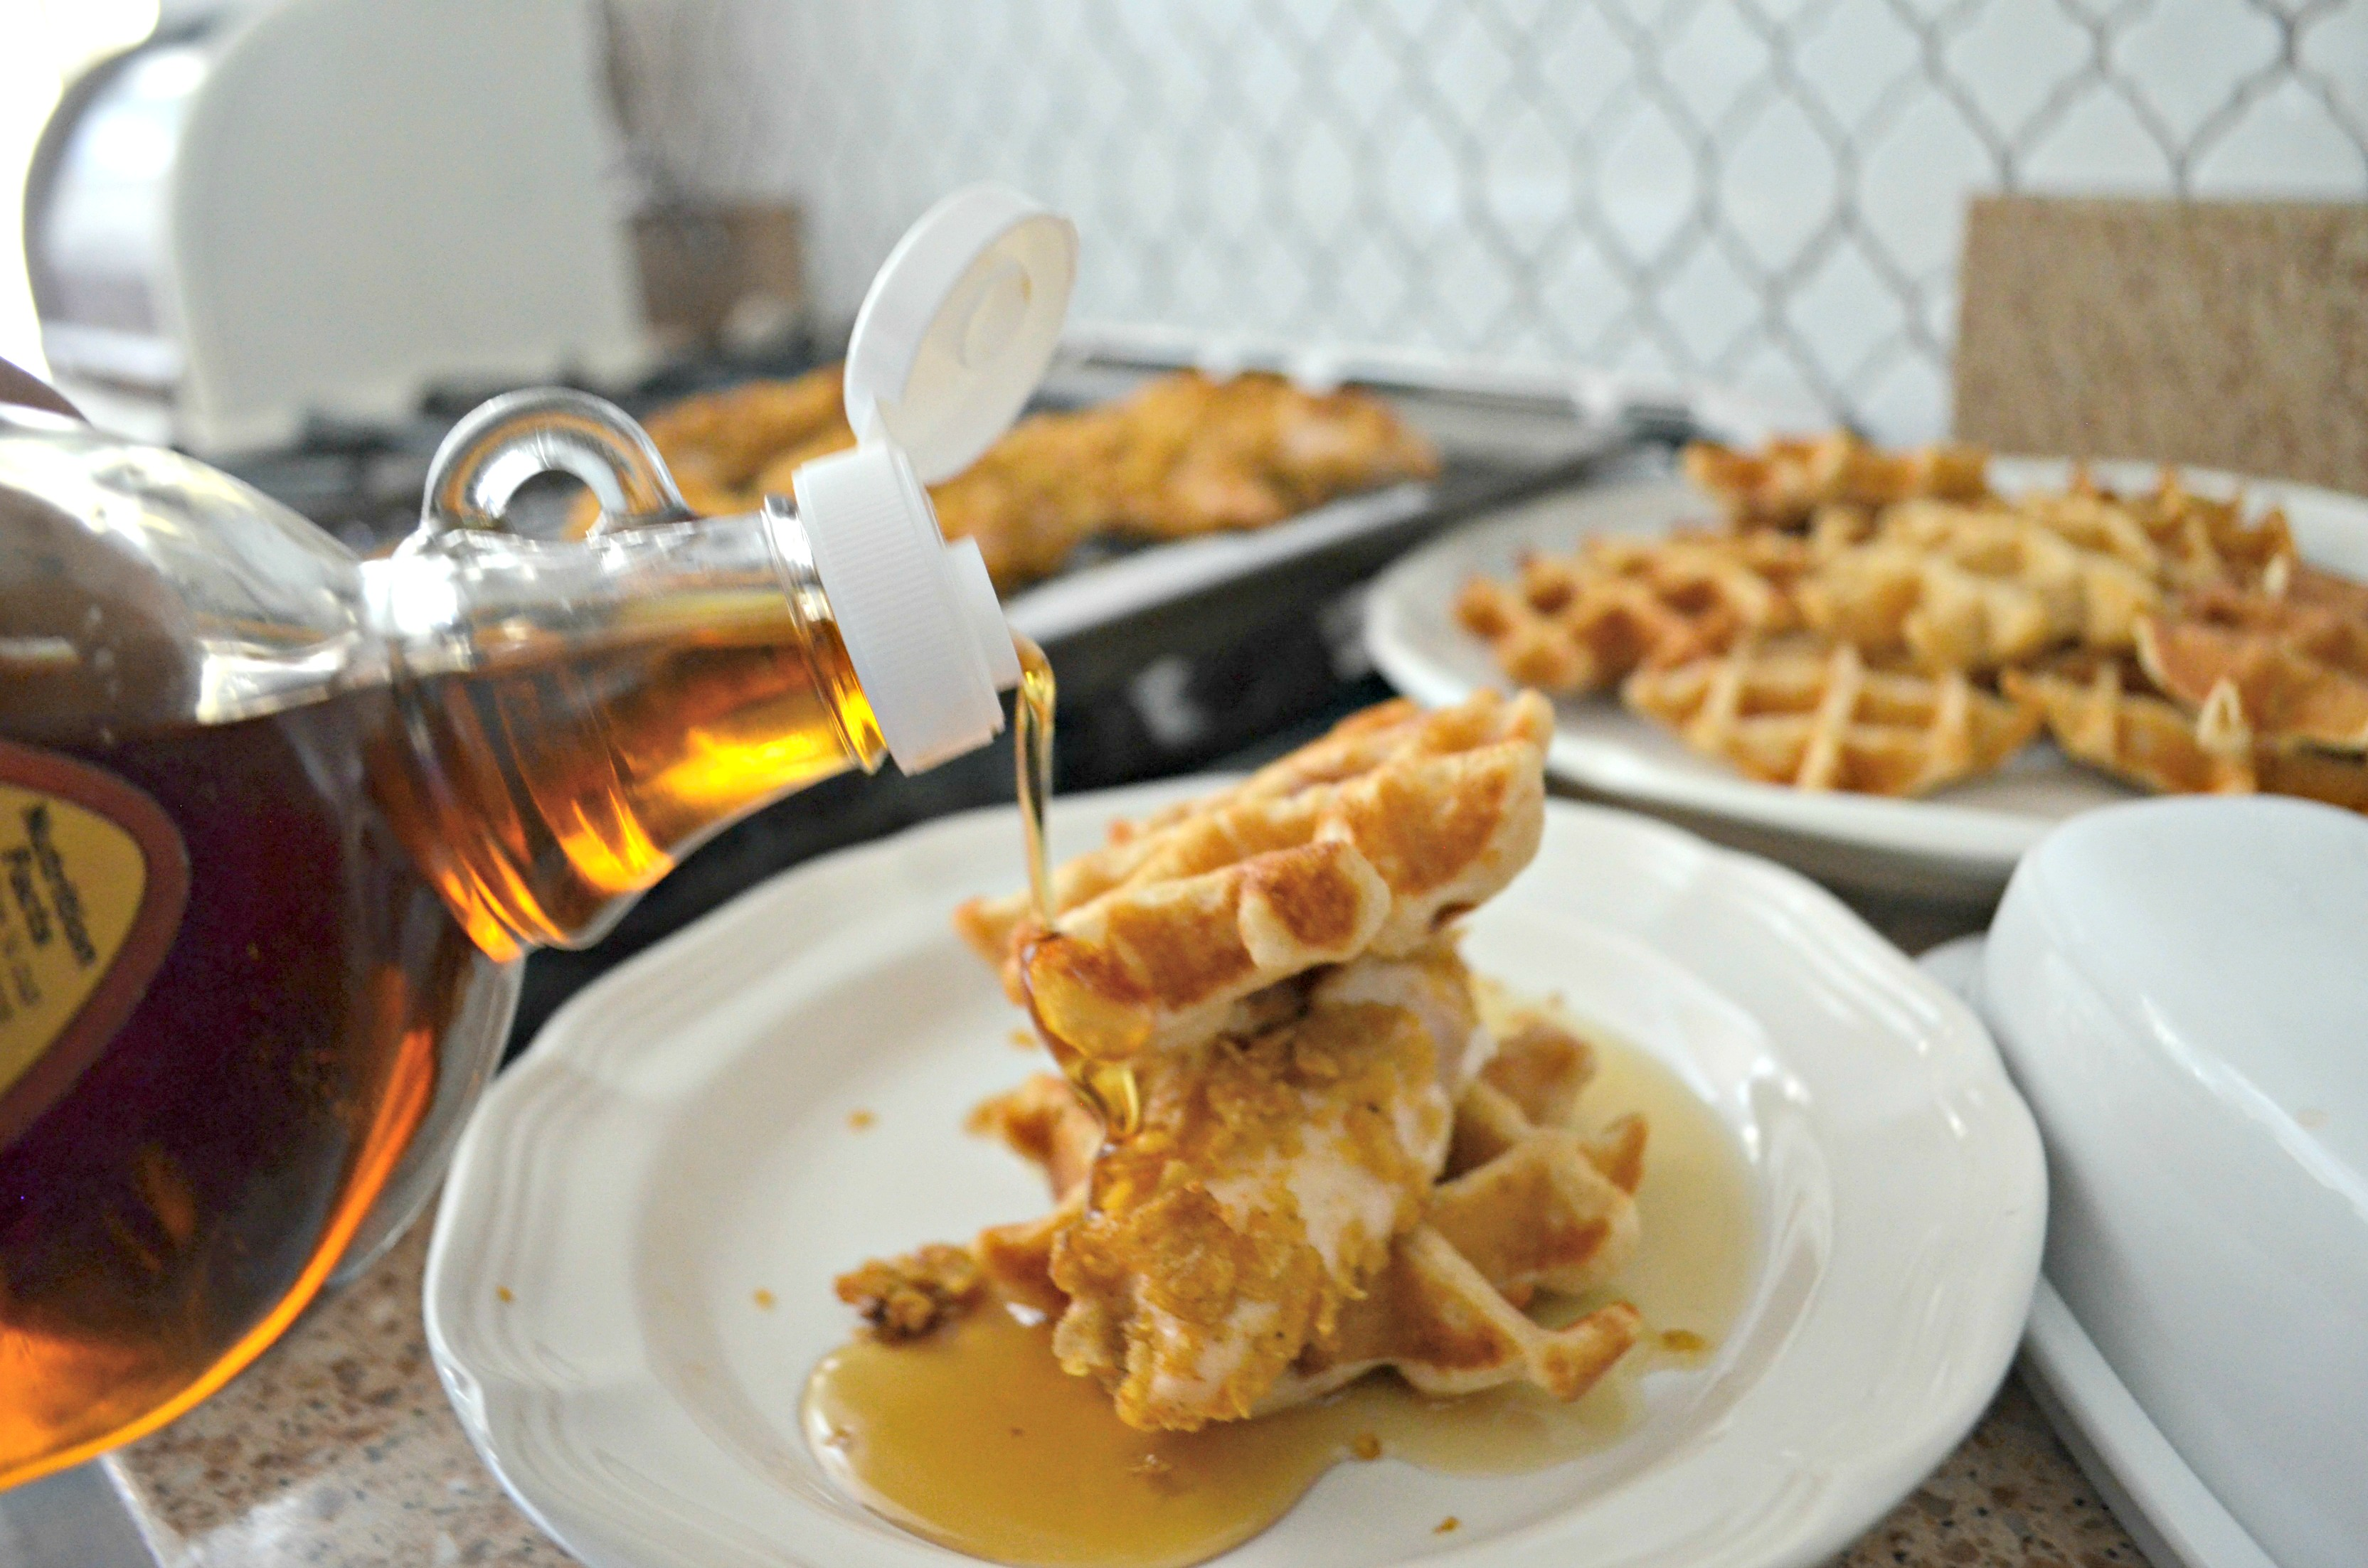 Easy Cornflake Chicken and Mini Waffles - pouring syrup over the waffles